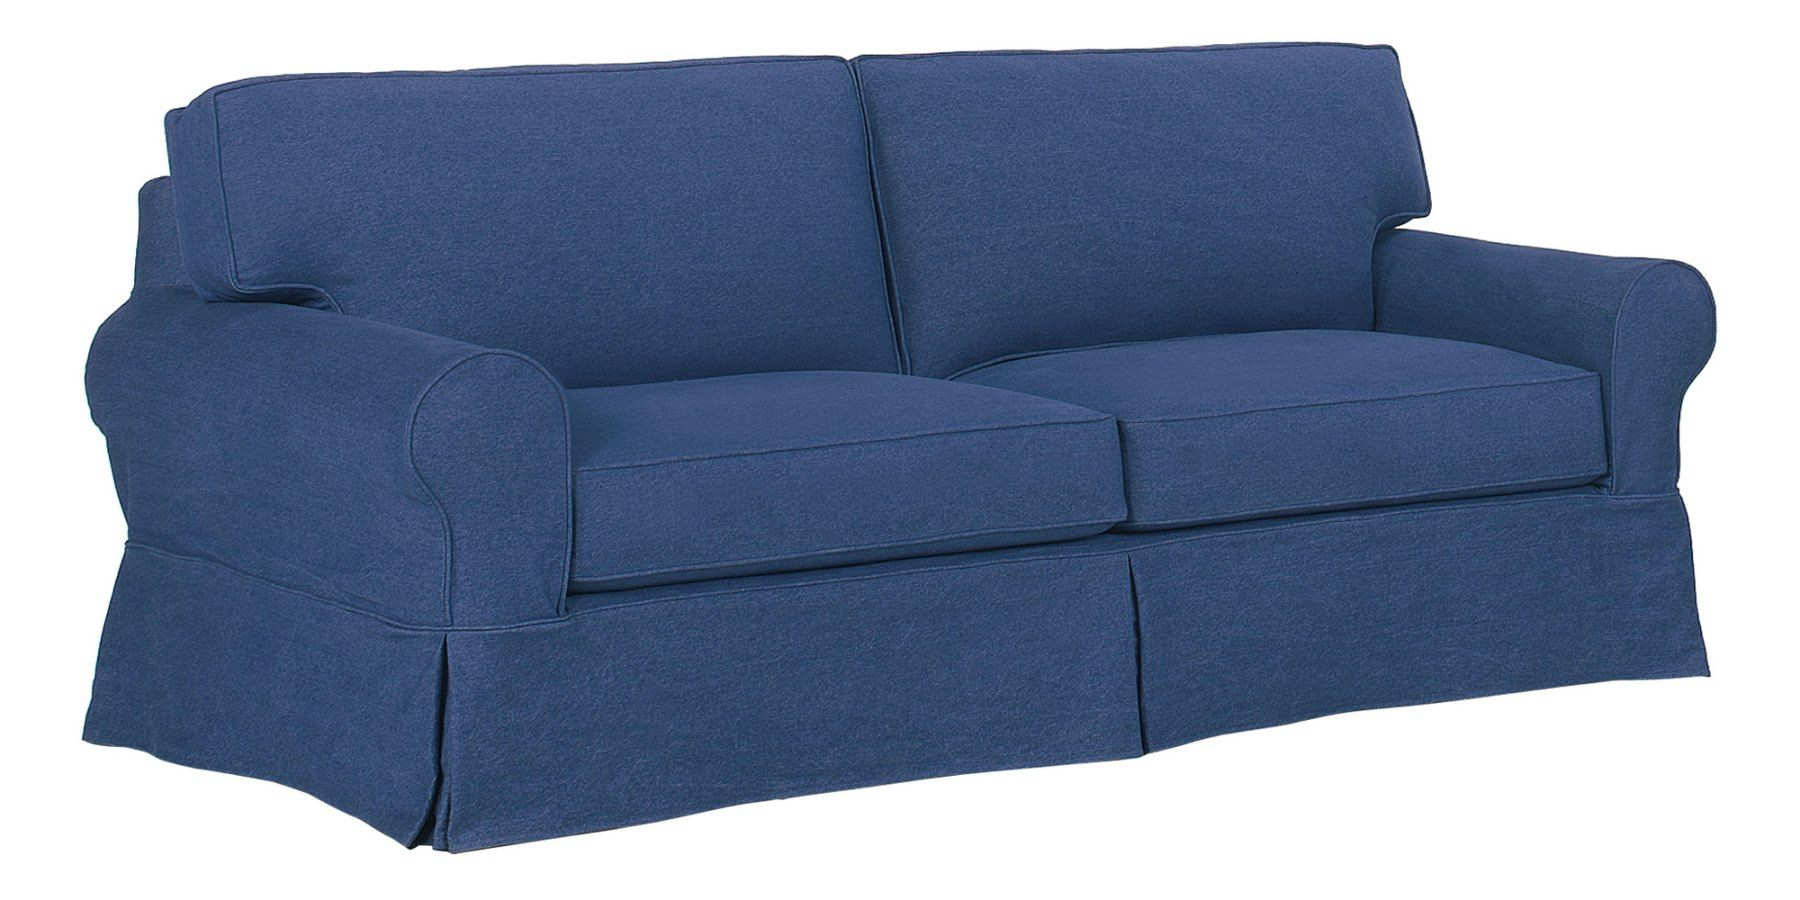 Camden Slipcover Couch Collection Beach House Living In